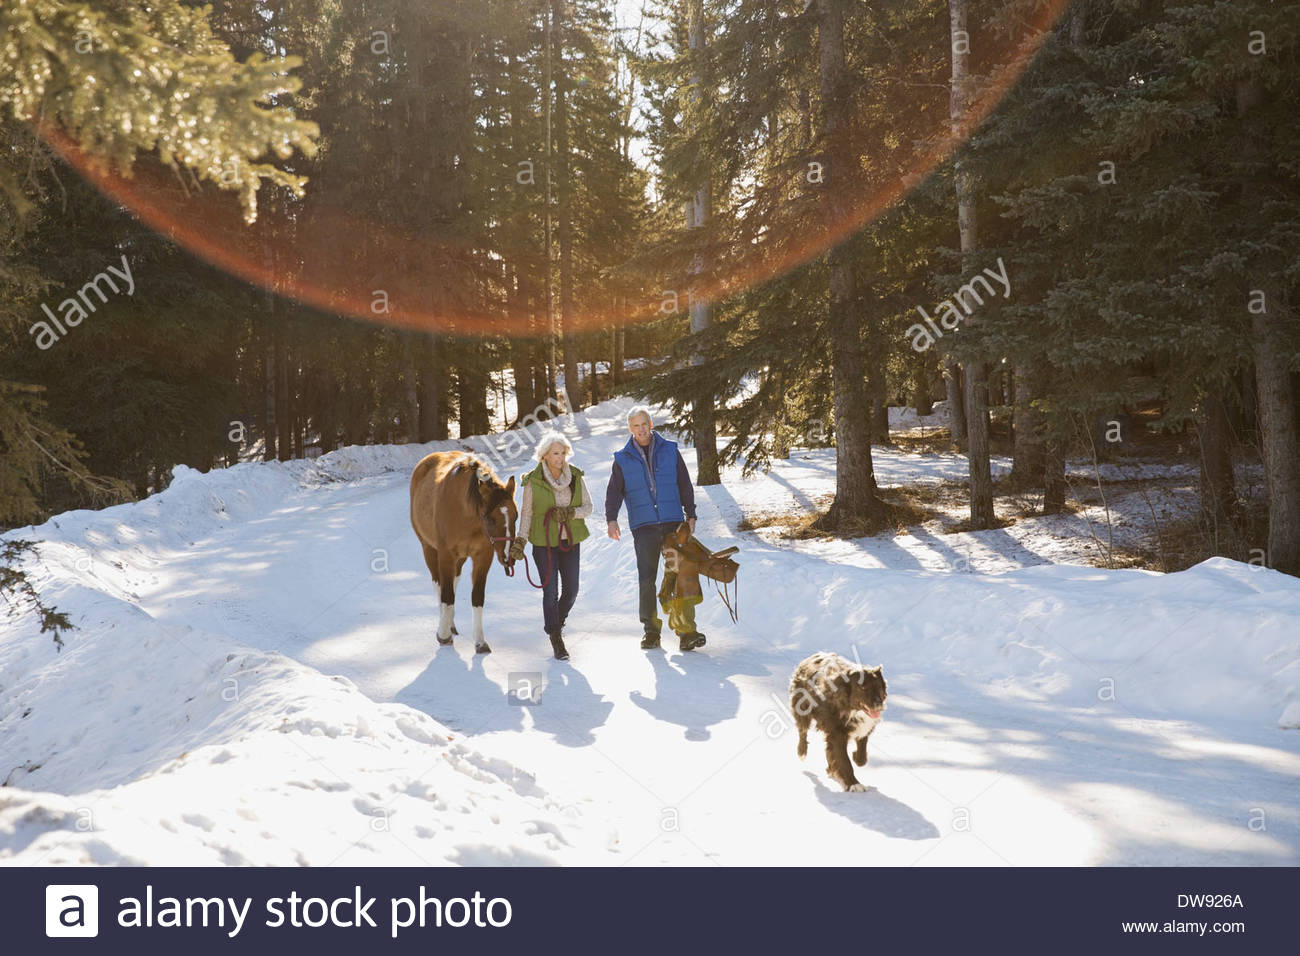 Couple with horse and dog walking in snow - Stock Image